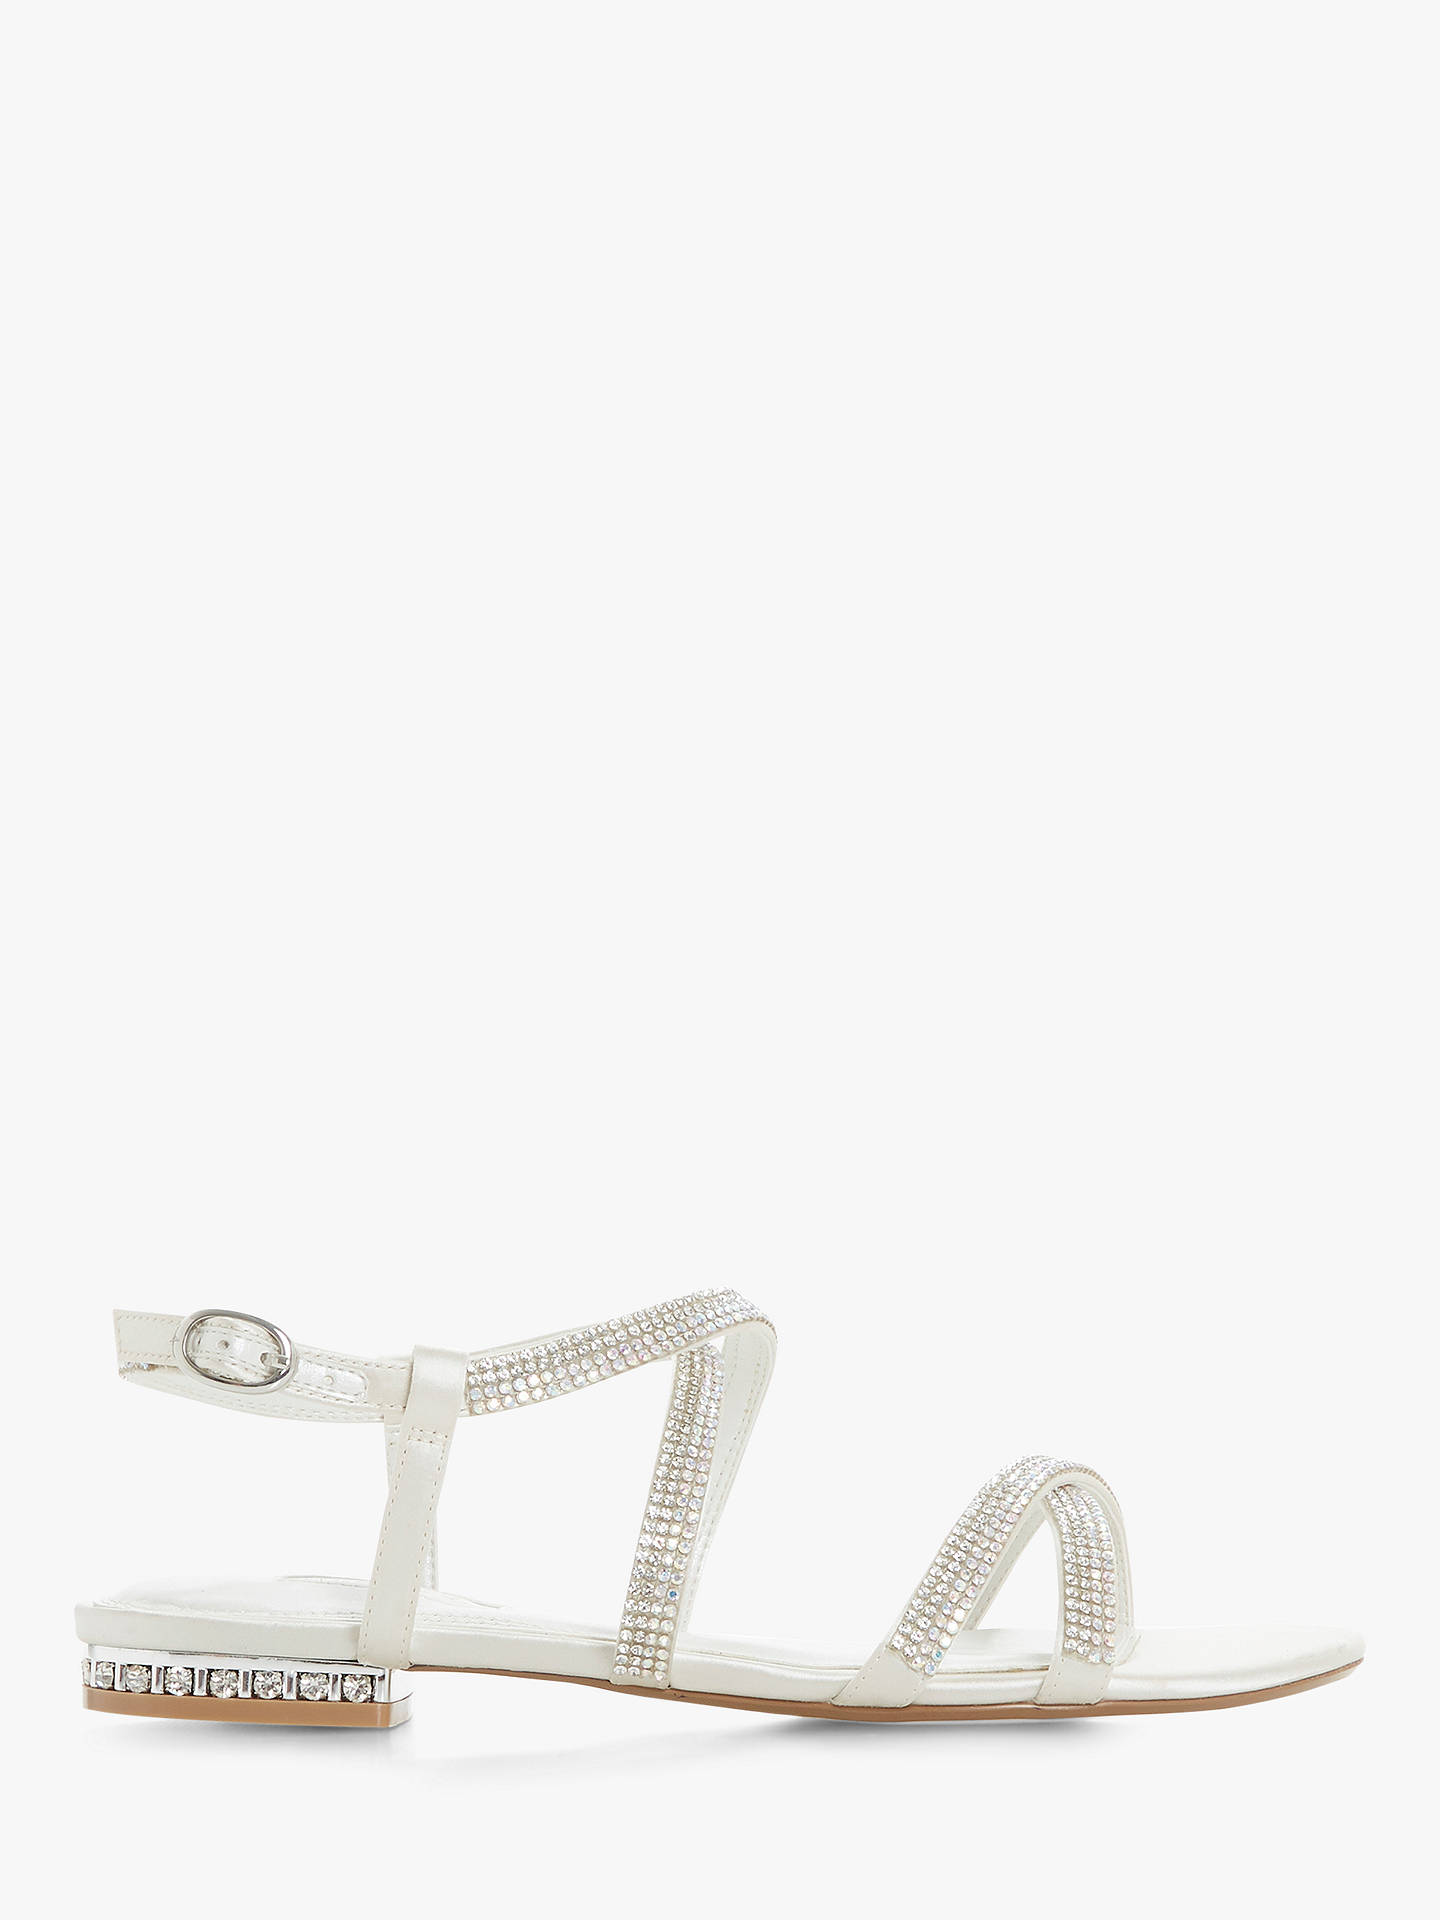 BuyDune Bridal Collection Nicest Diamante Strap Sandals, Ivory, 8 Online at johnlewis.com